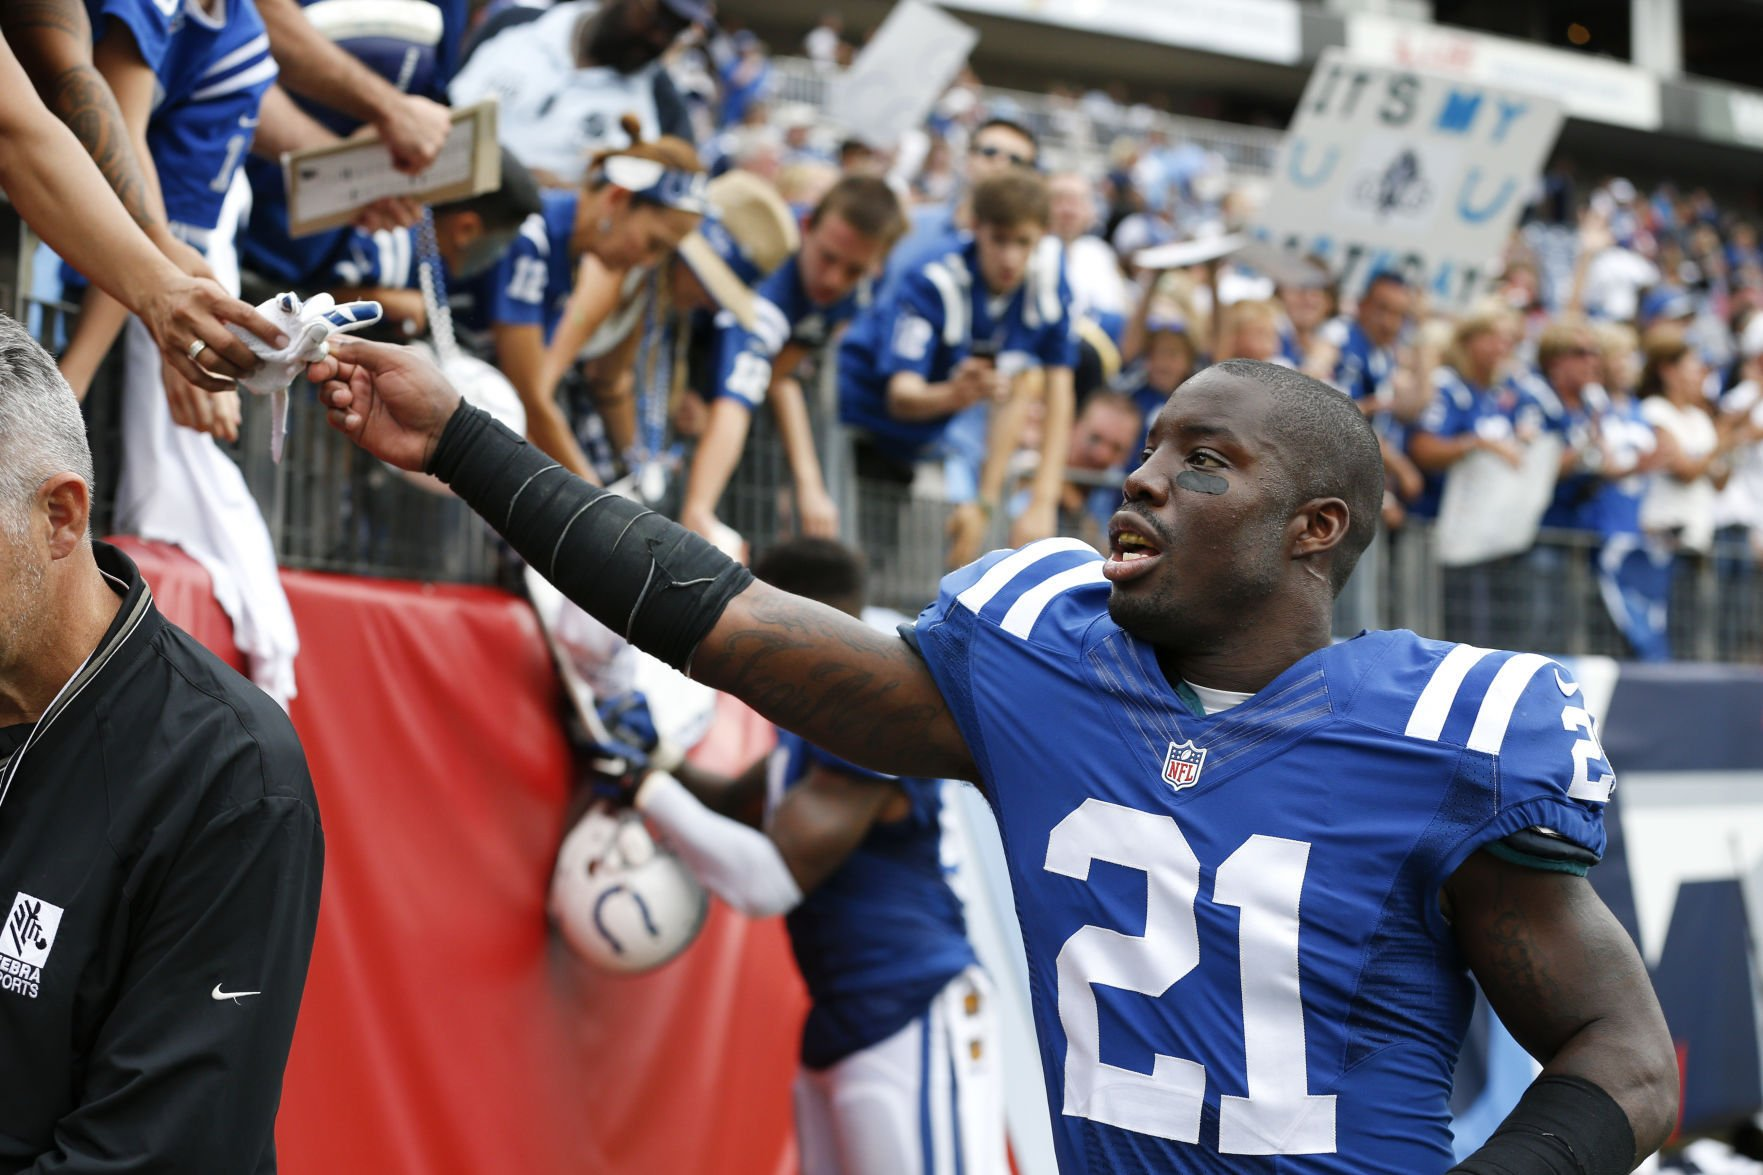 Colts cornerback Vontae Davis 'week-to-week' with groin injury